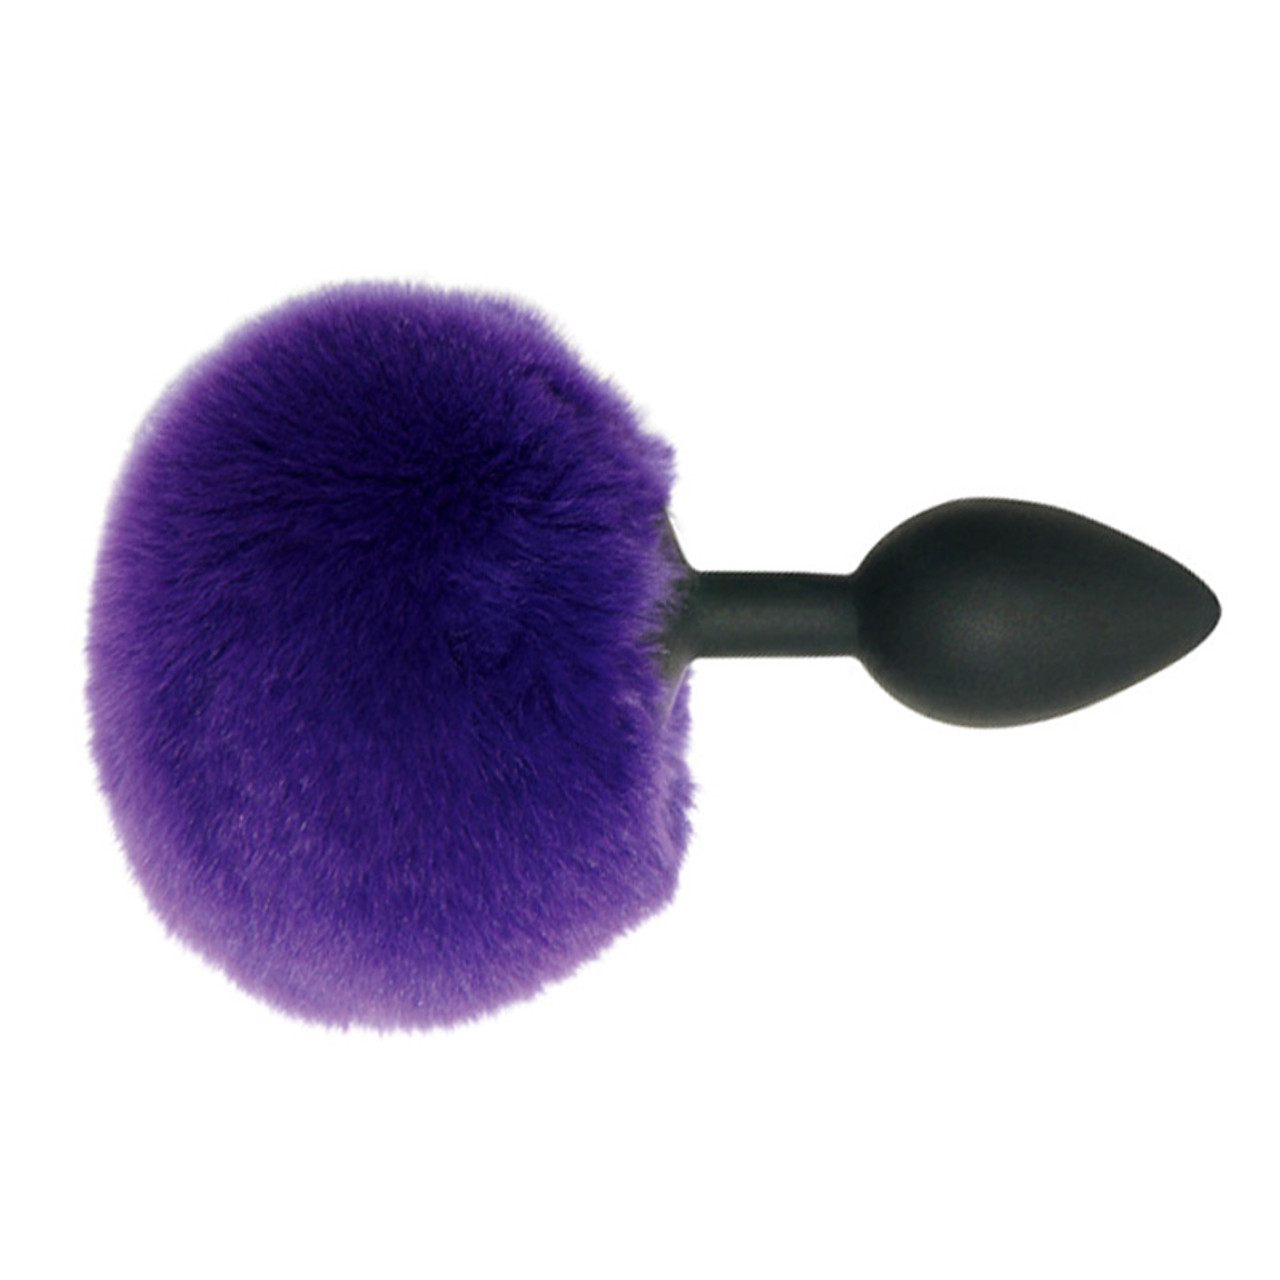 Sportsheets Midnight Silicone Butt Plug With Purple Bunny -8054